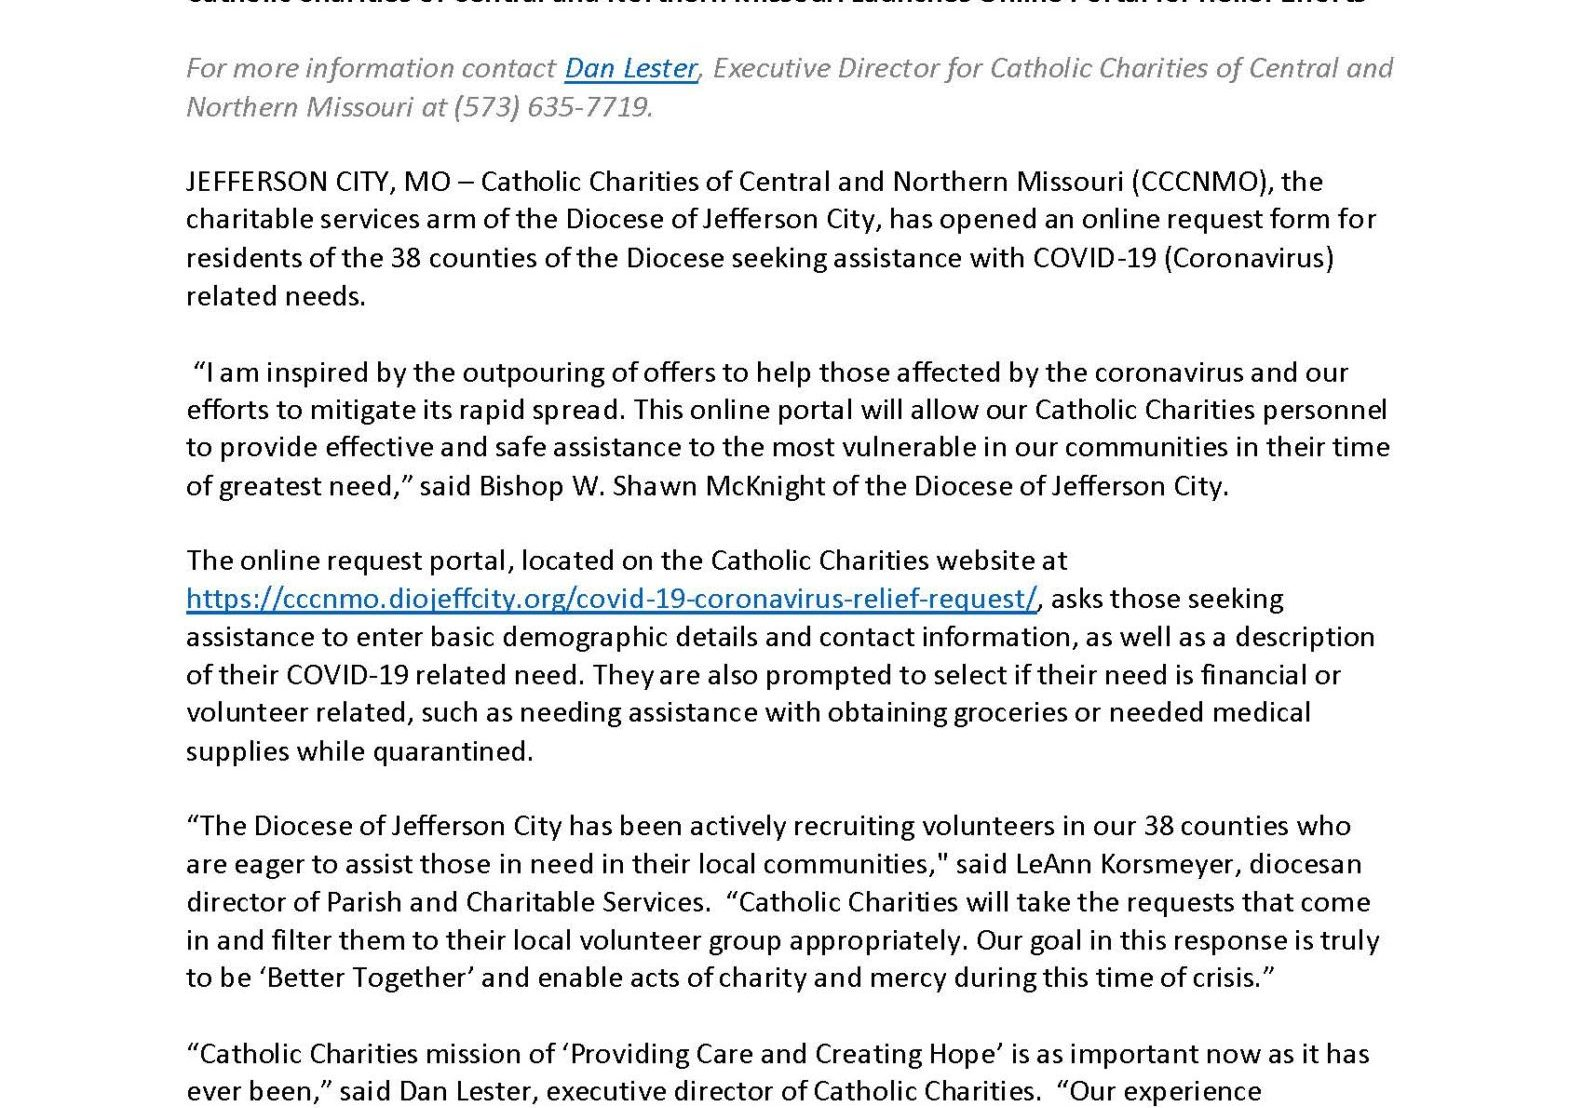 Catholic Charities Of Central And Northern Missouri Launches Online Portal For Relief Efforts Page 1